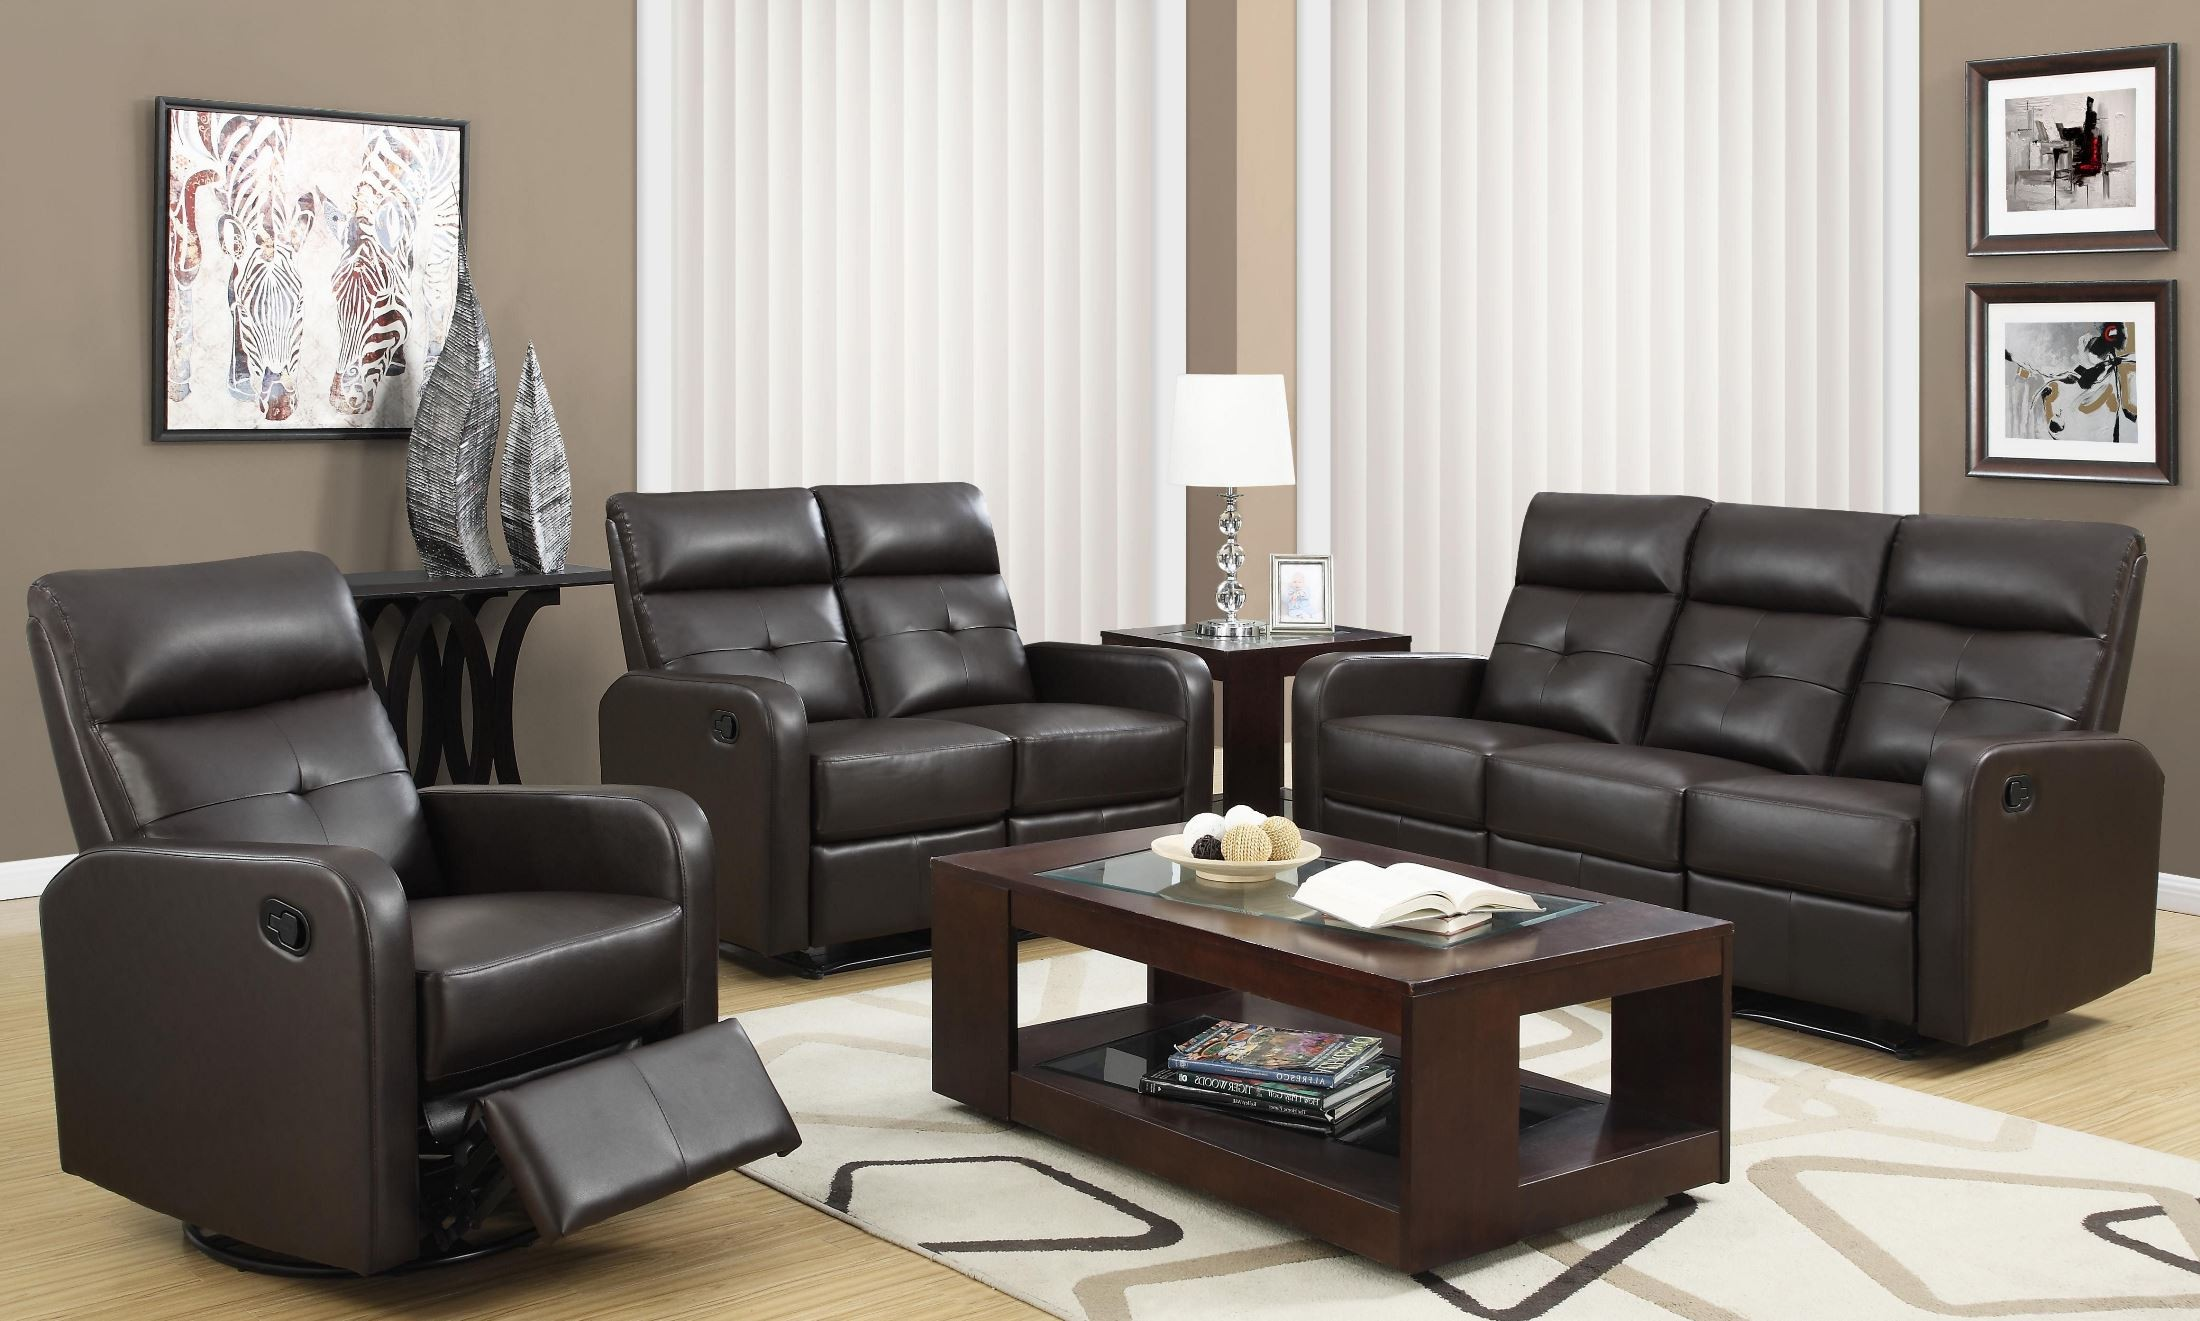 85br 3 brown bonded leather reclining living room set for Brown leather living room set